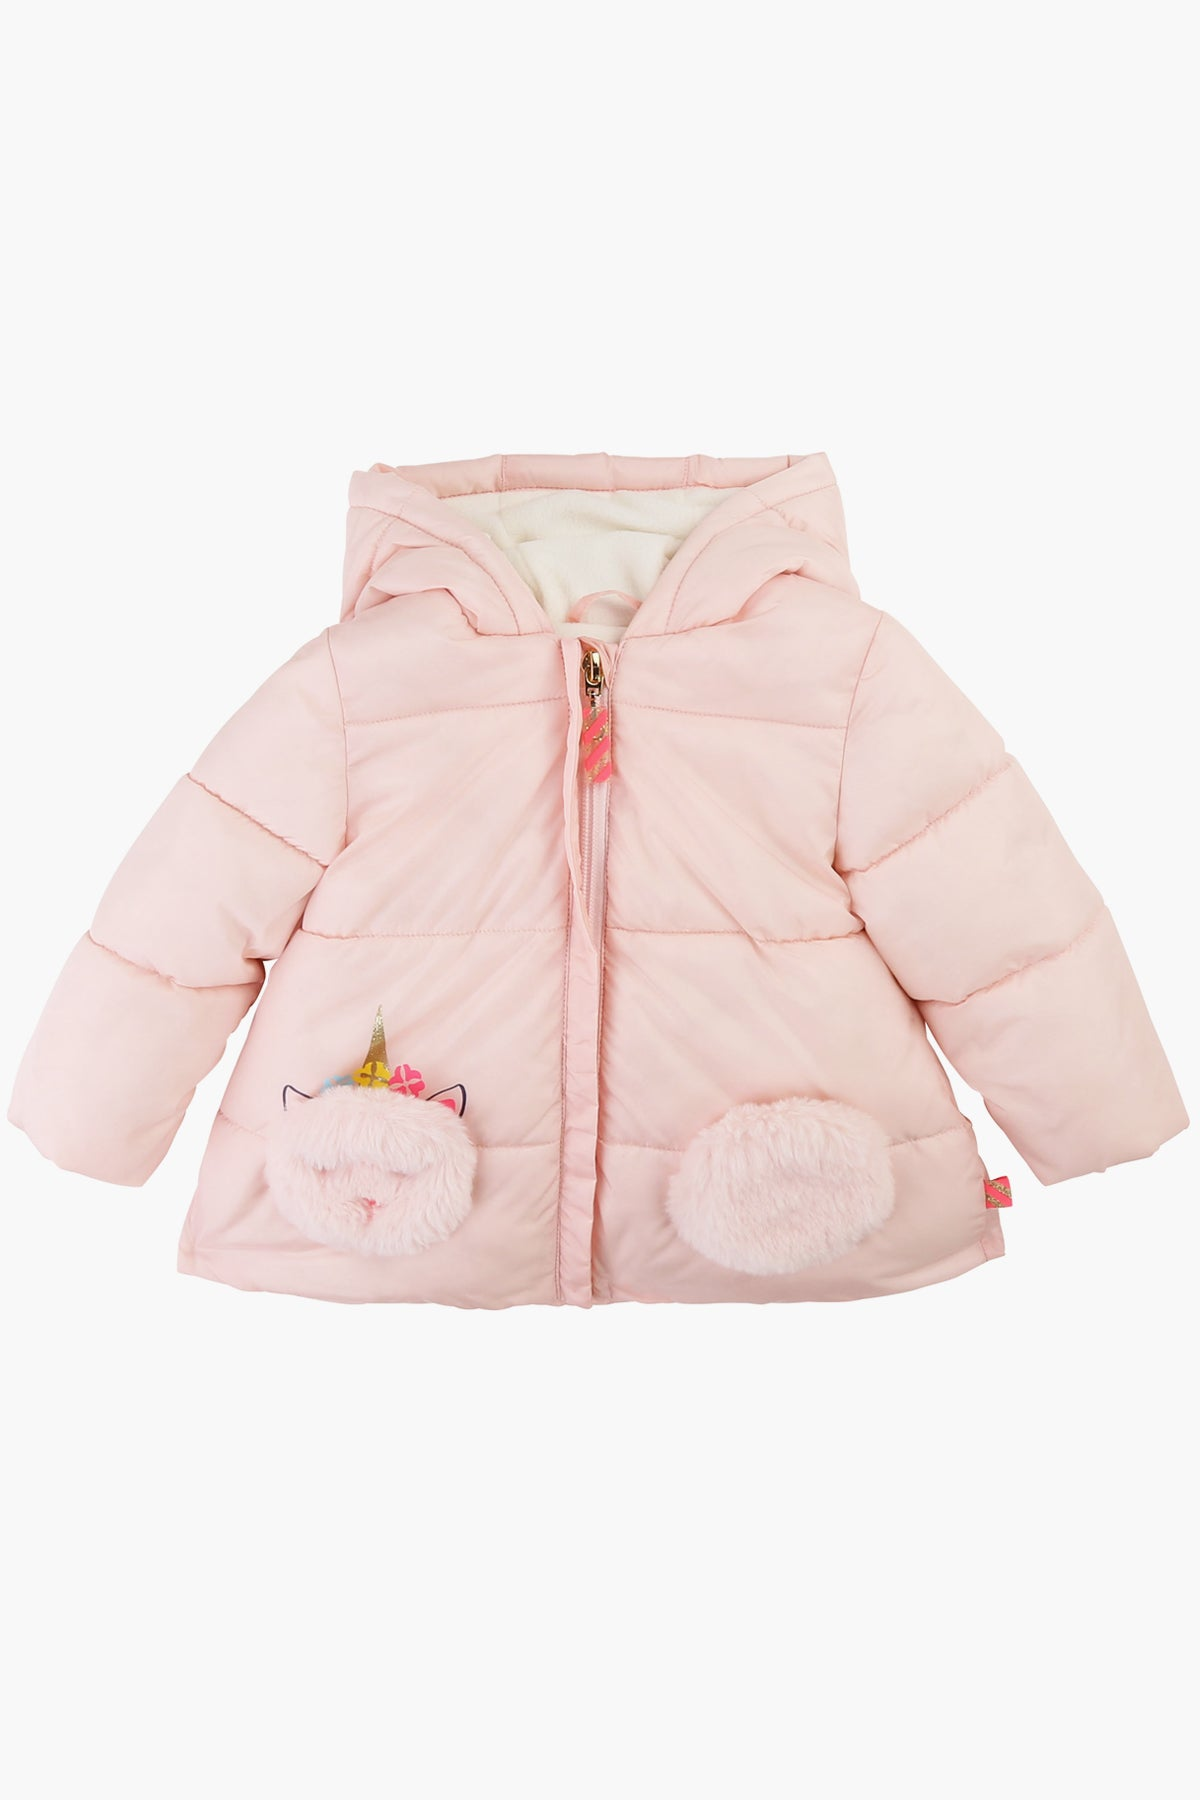 Billieblush Unicorn Puffer Baby Girls Jacket